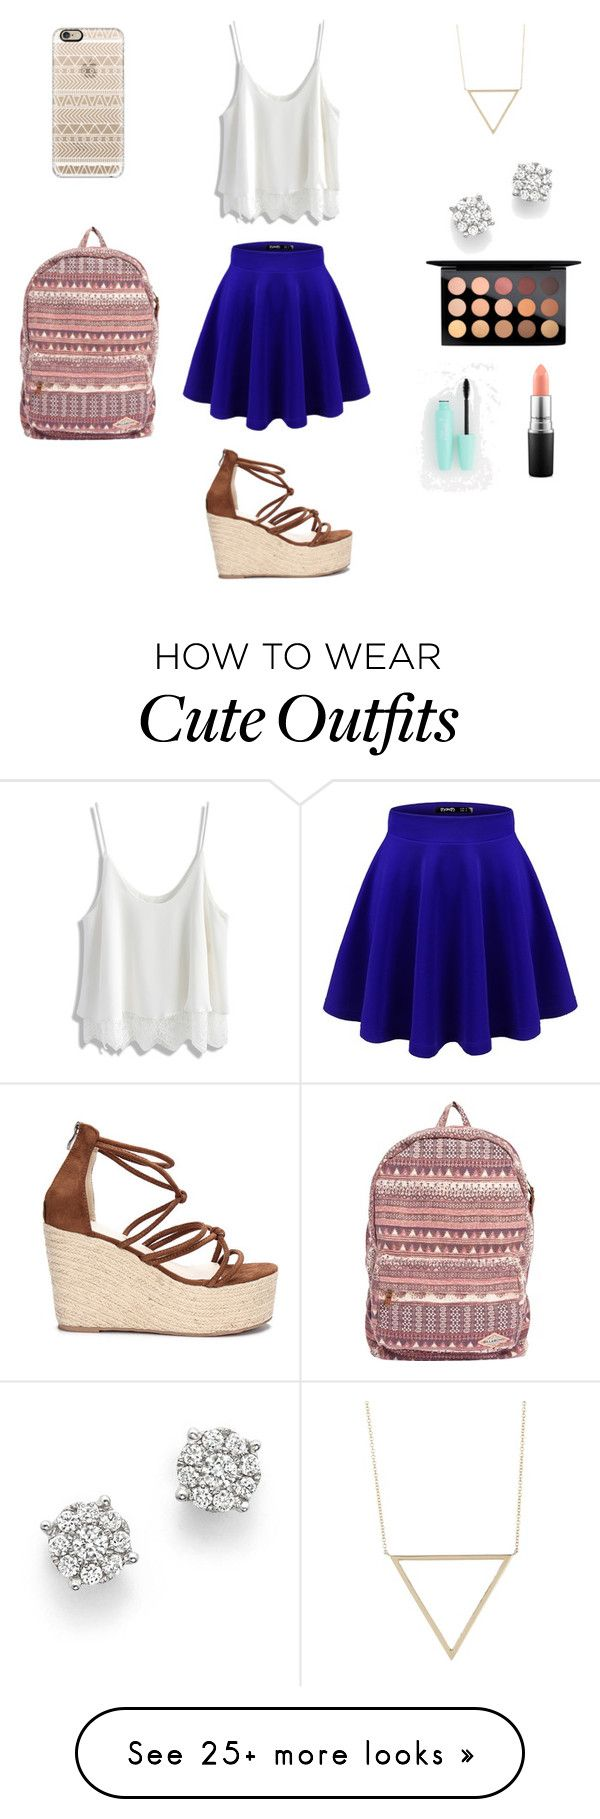 """Cute outfit"" by stuff4m on Polyvore featuring Casetify, Billabong, Bloomingdale's, MAC Cosmetics, Bony Levy and Chicwish"